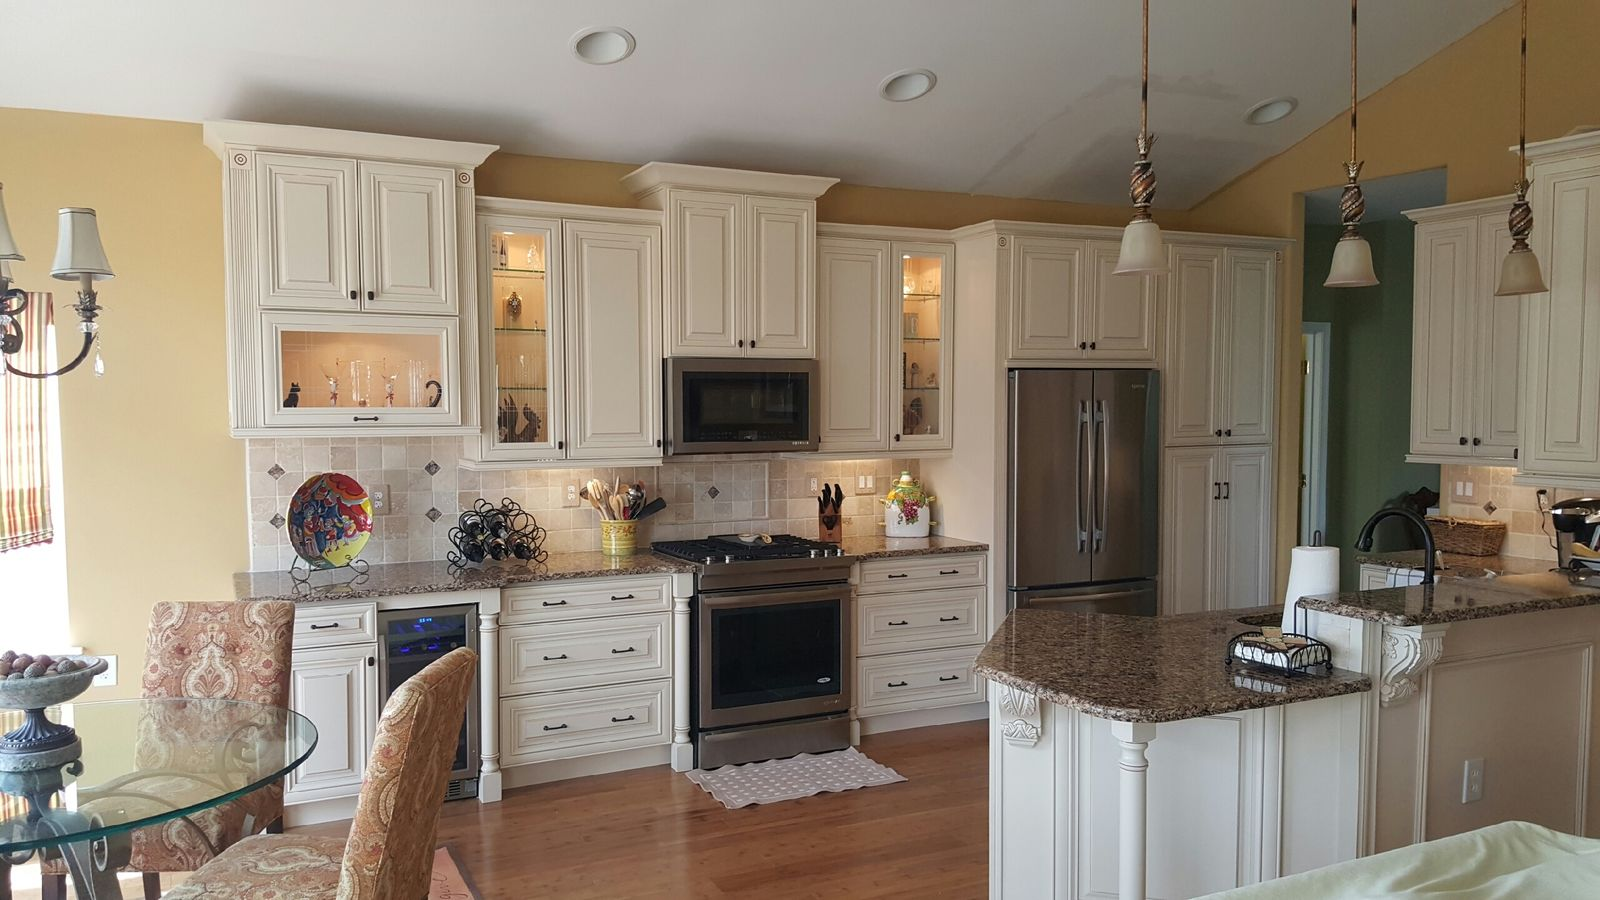 Kitchen Remodel Custom Cabinet island Installation